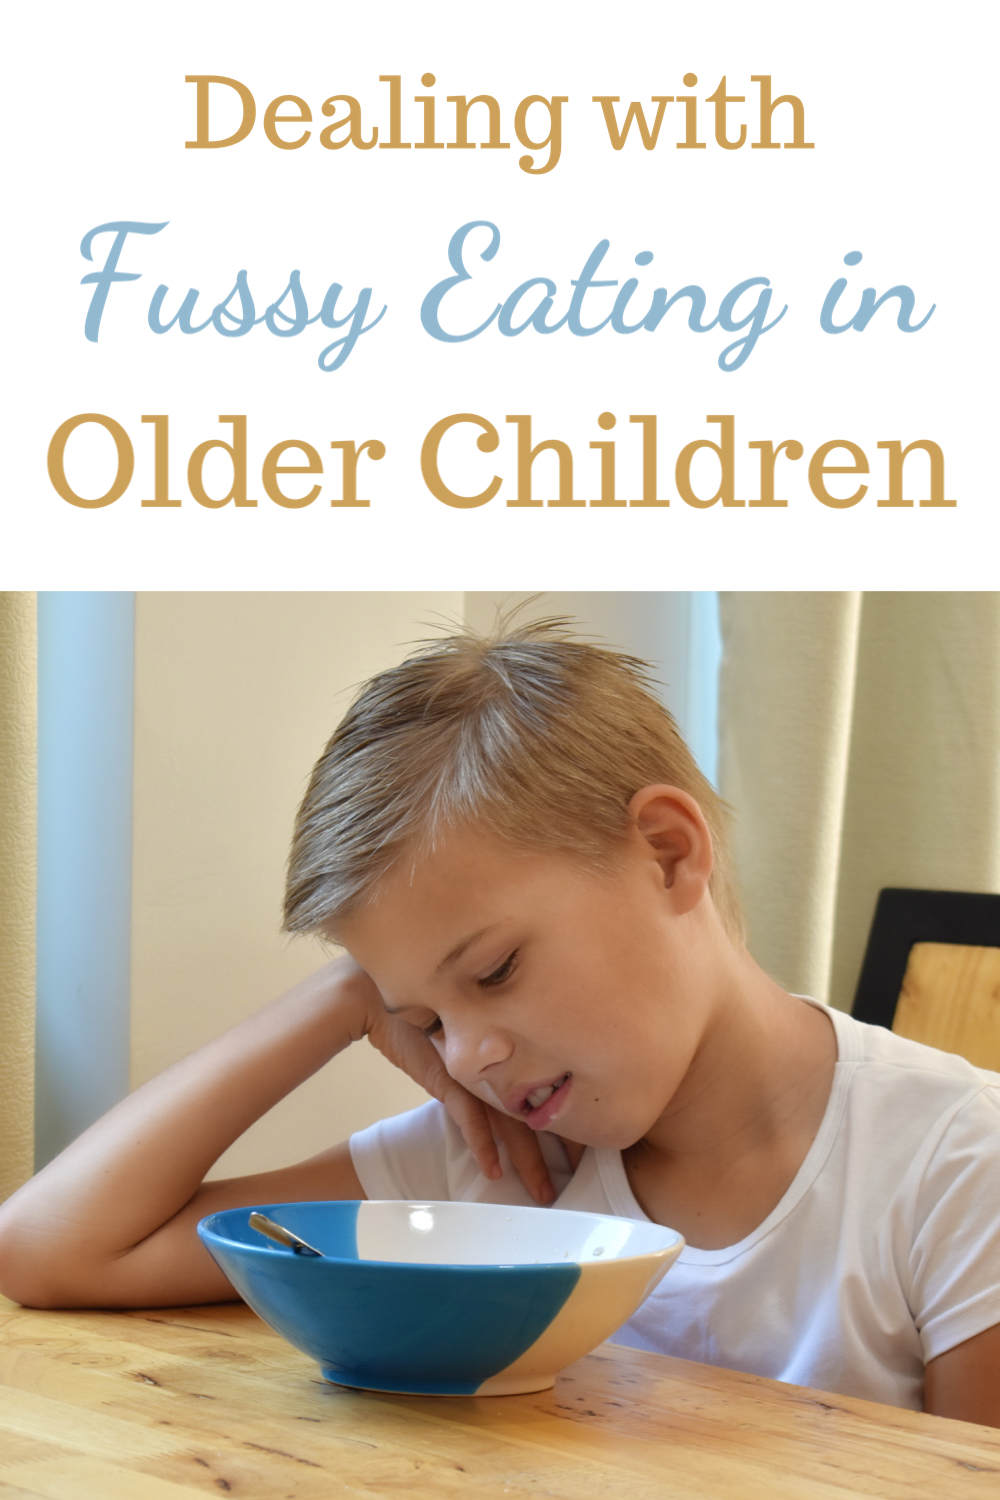 How to deal with fussy eating in older children